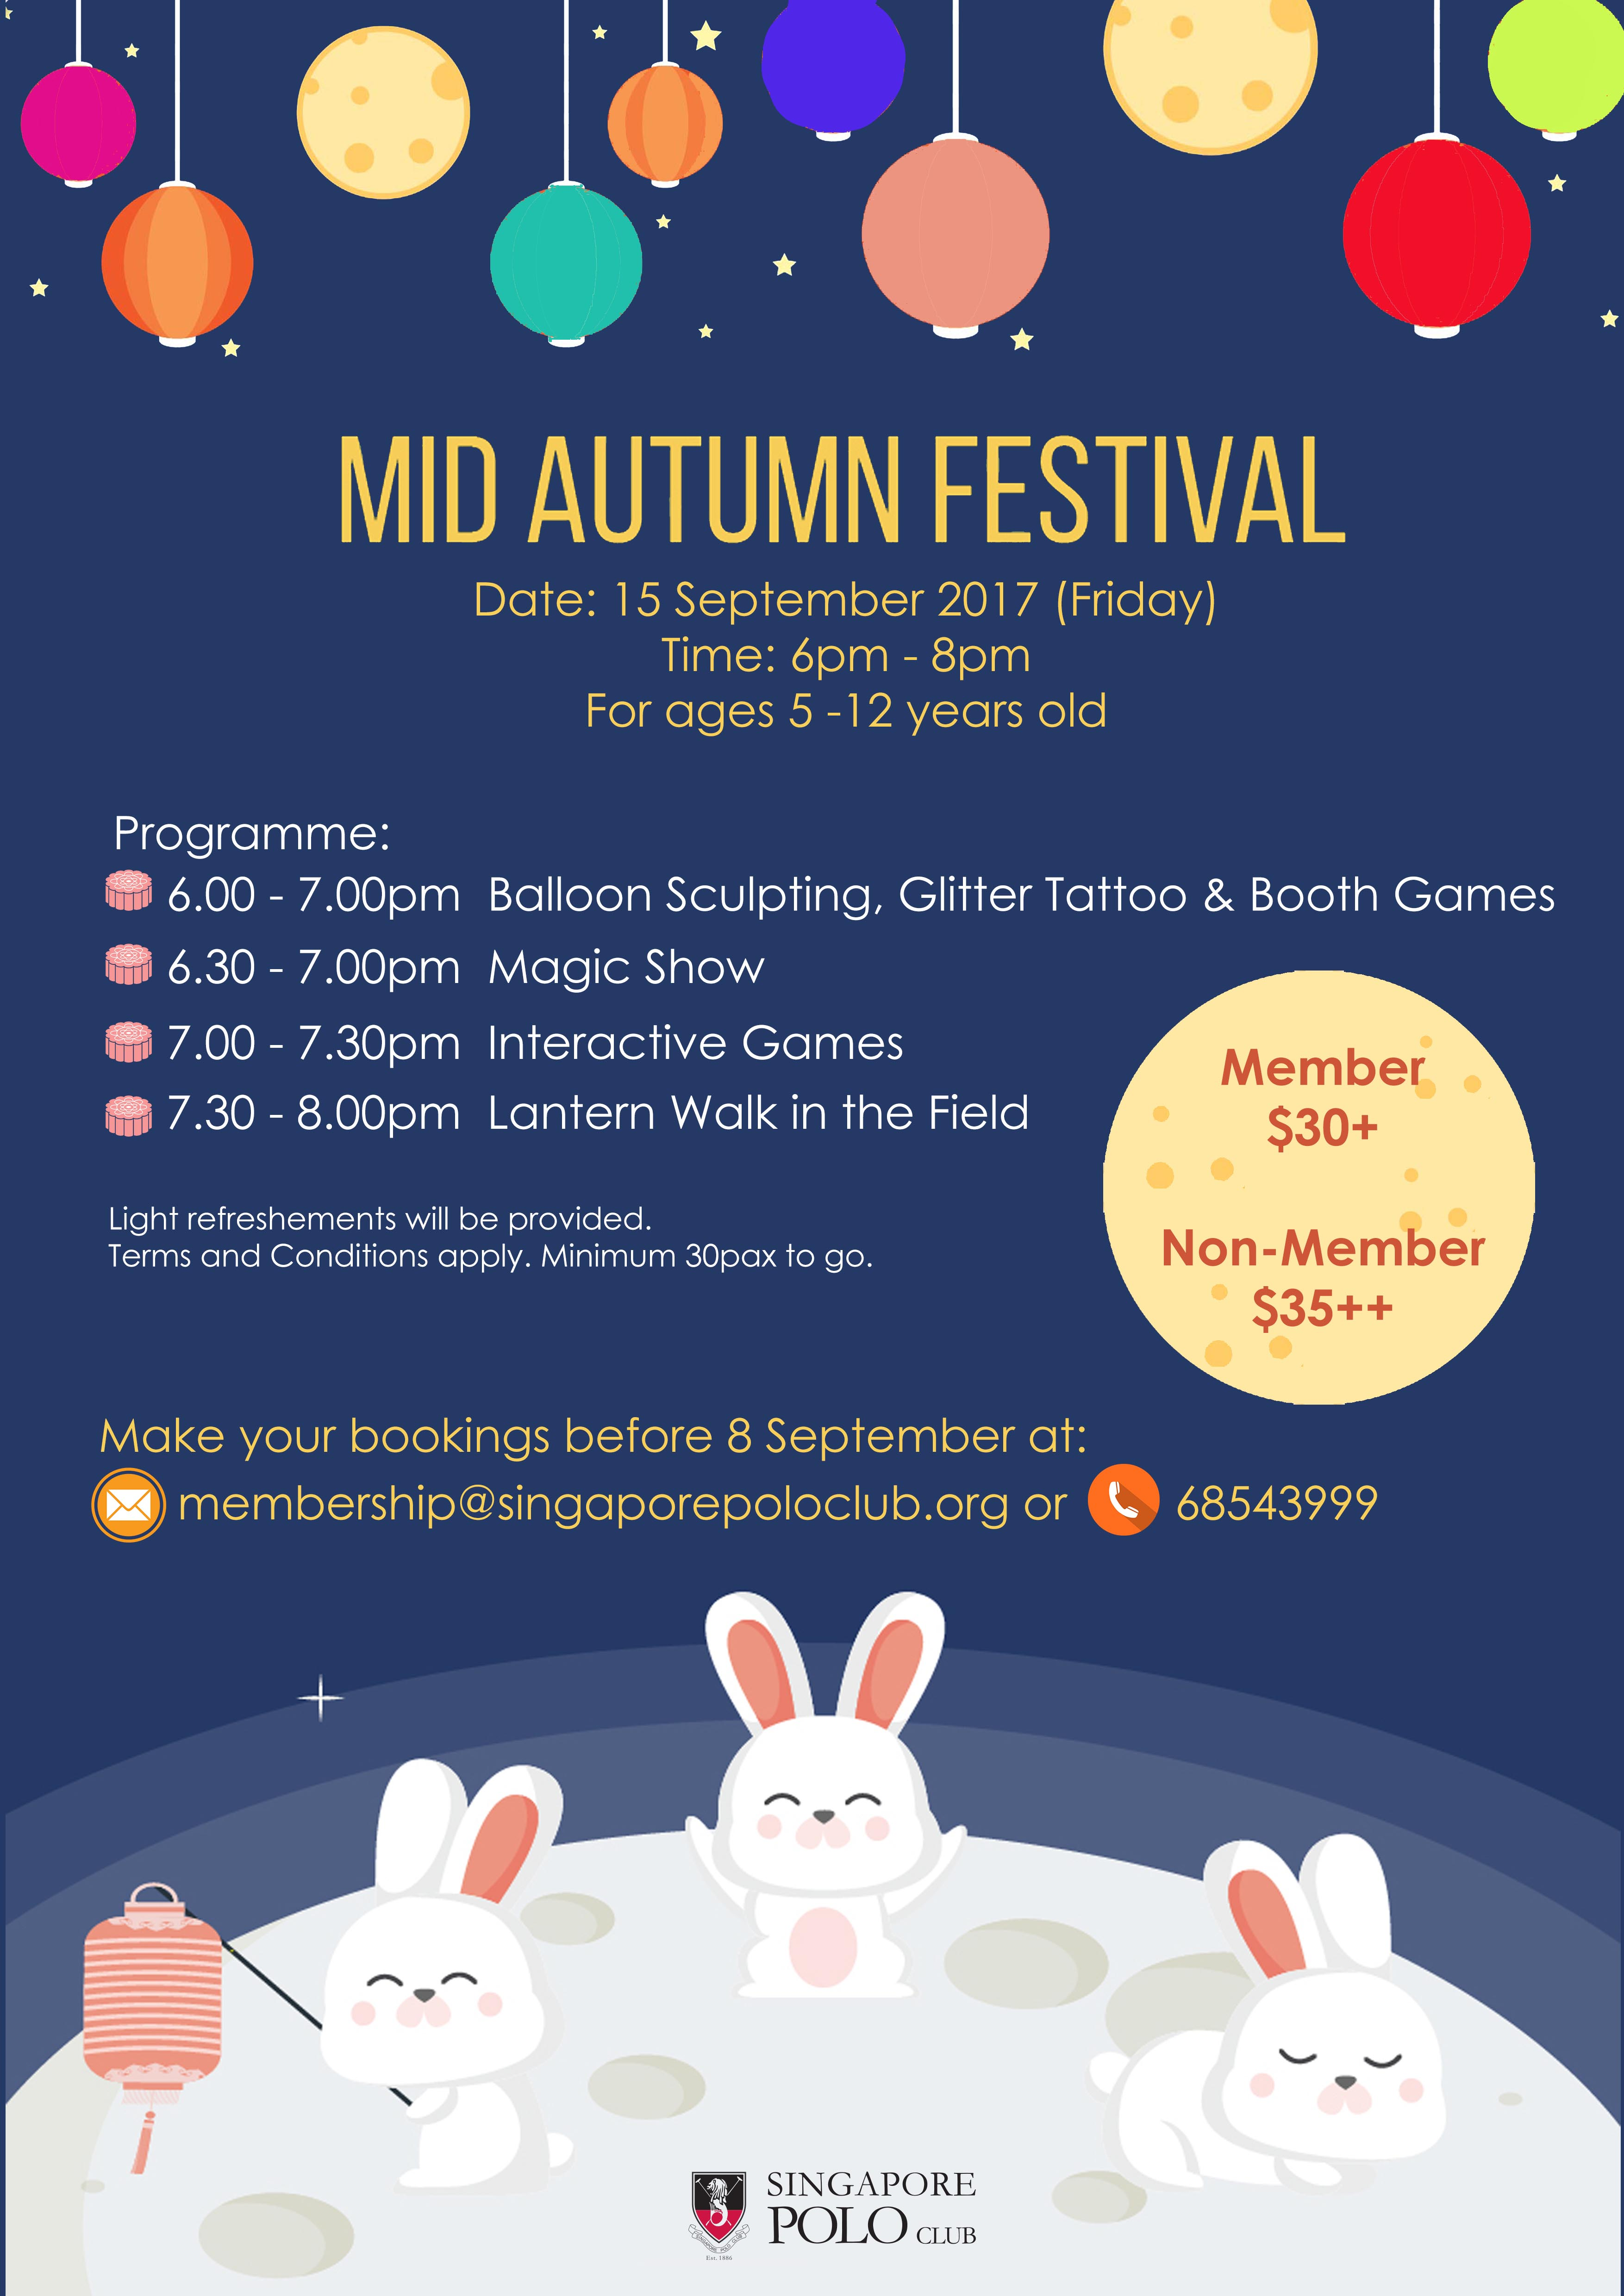 Mid Autumn Festival -Events